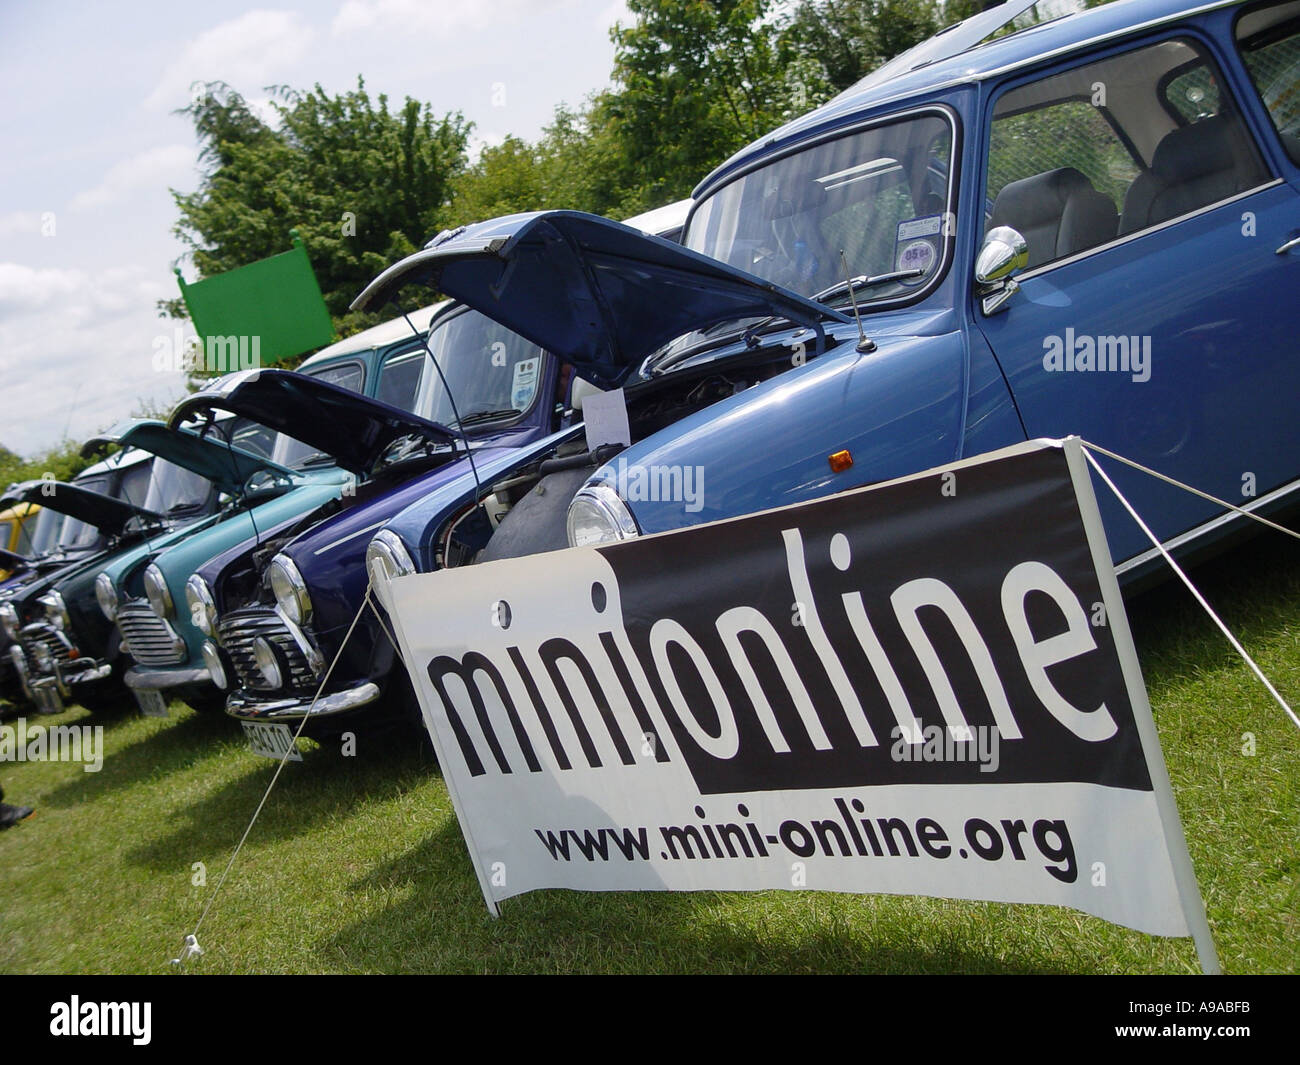 Motor racing cars at an event England GB UK 2003 - Stock Image